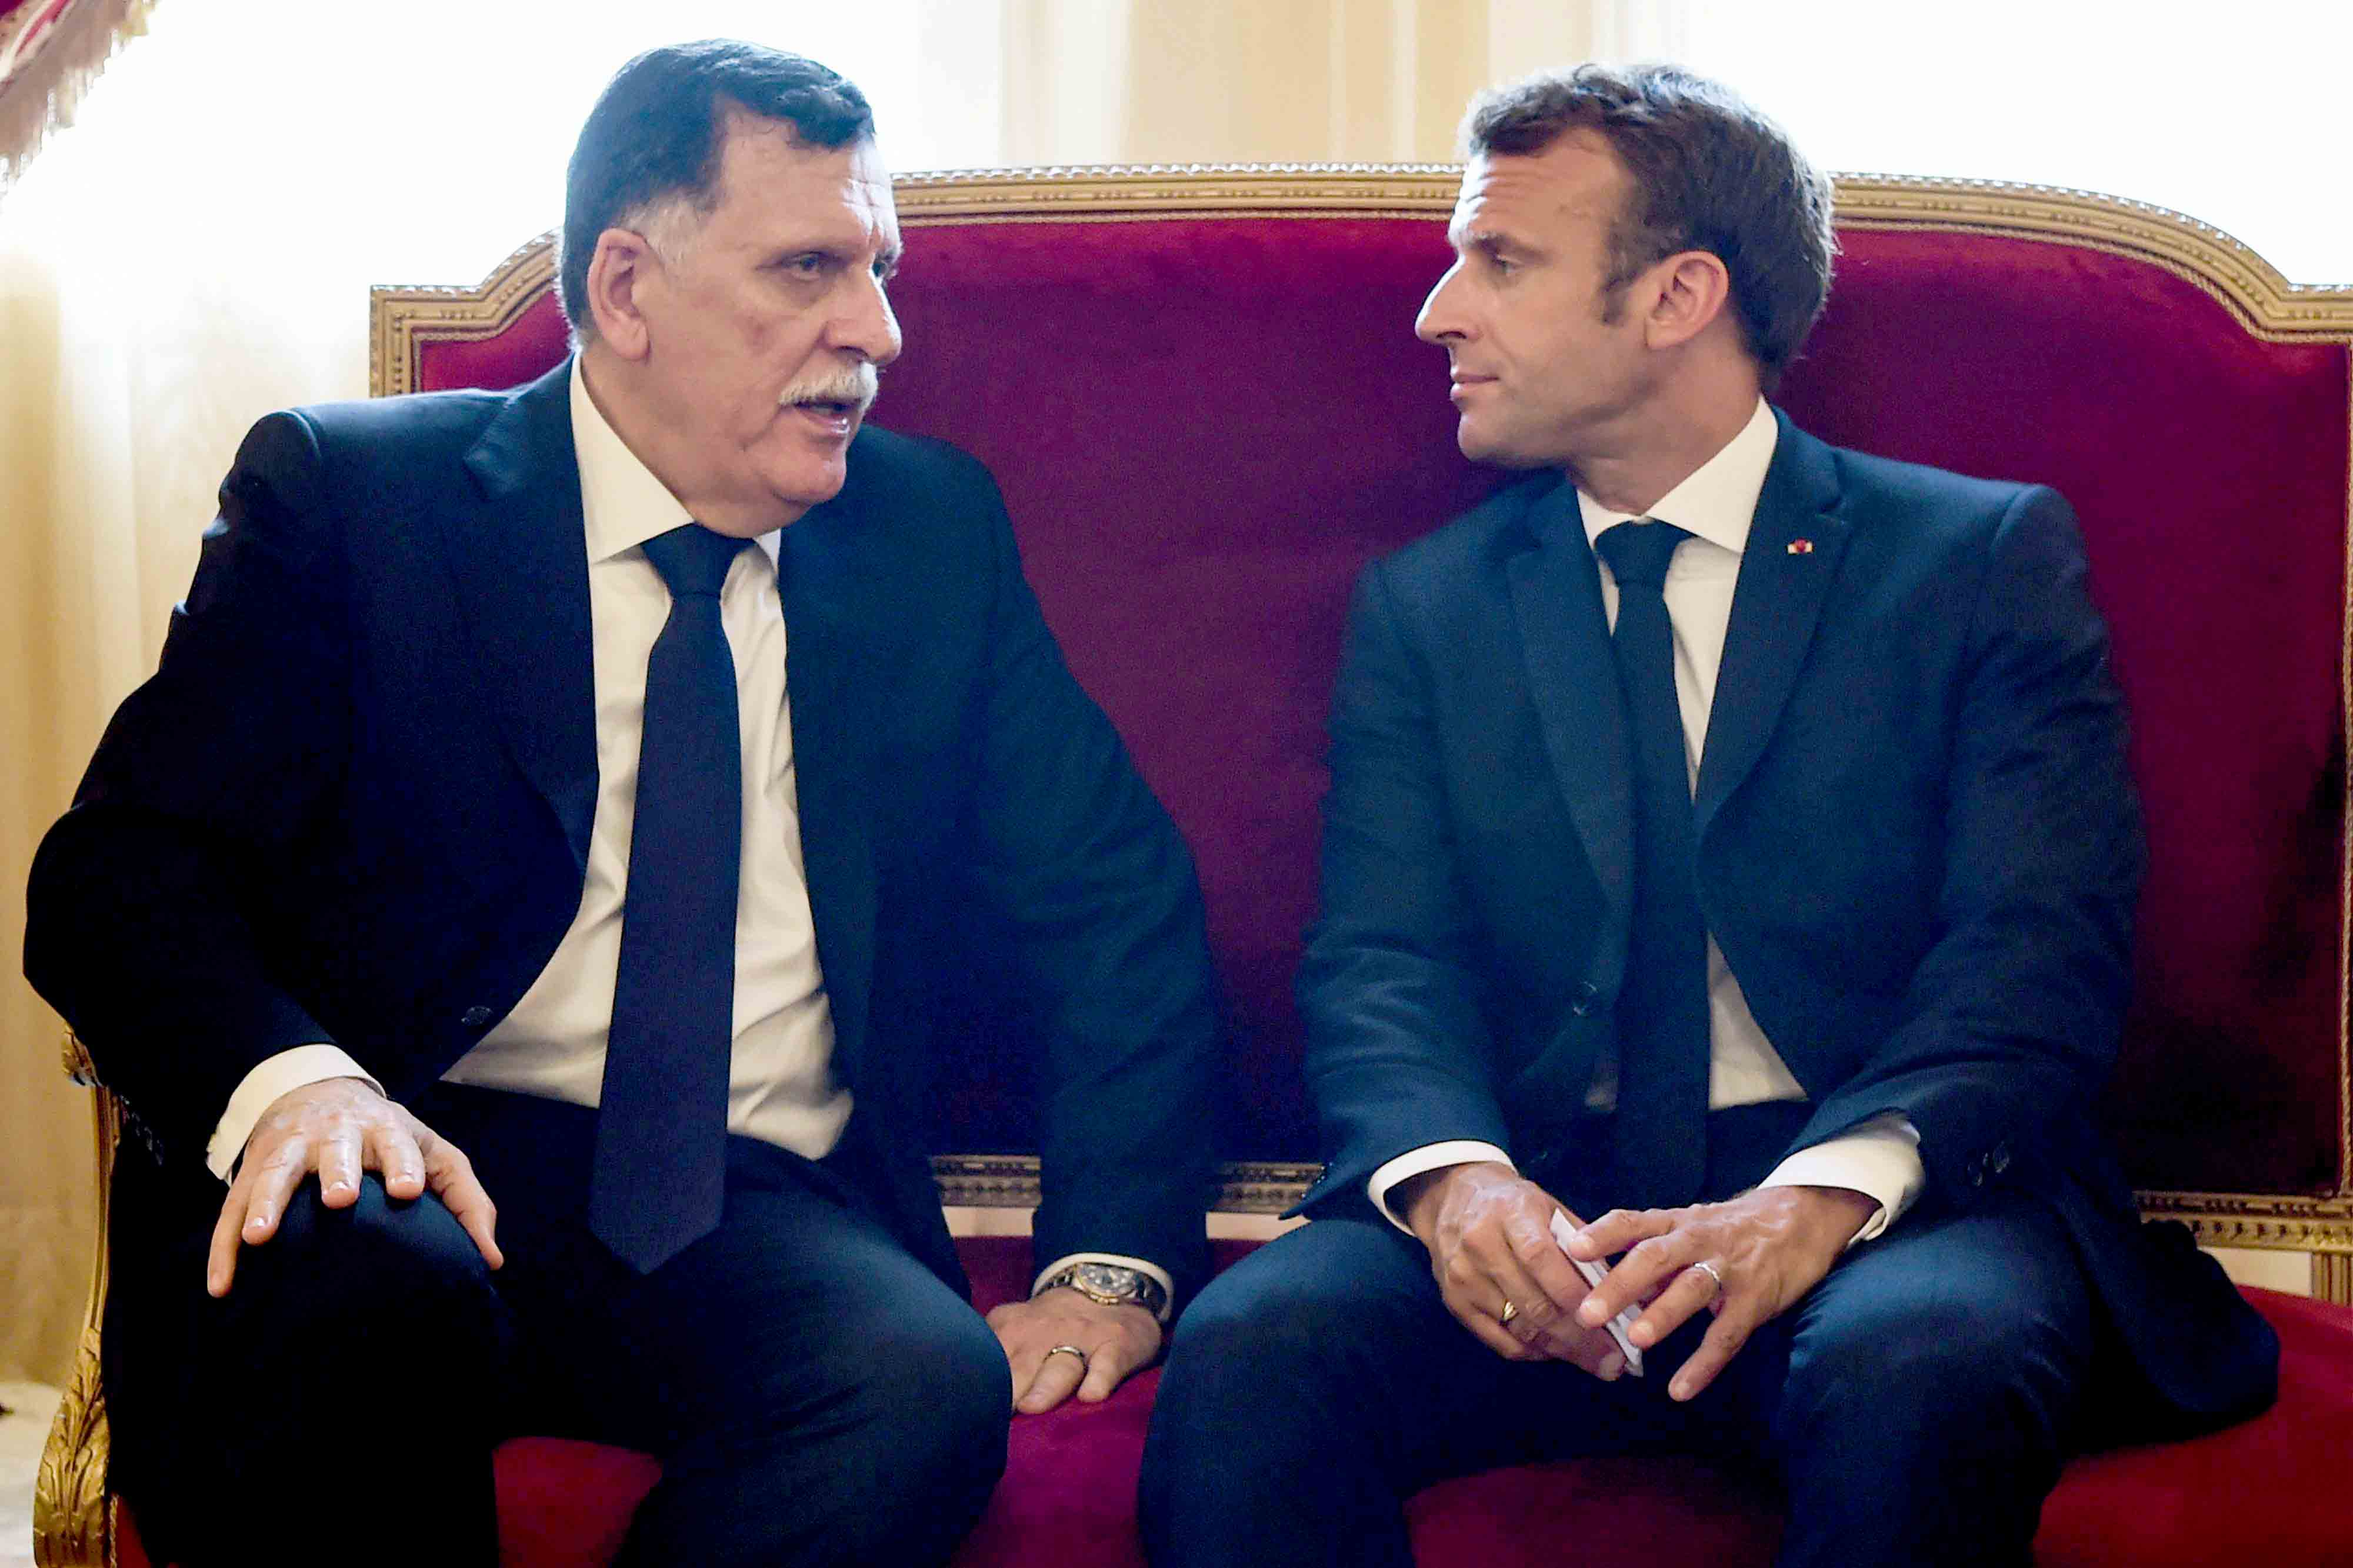 French President Emmanuel Macron (R) speaks with Libya's UN-recognised Prime Minister Fayez al-Sarraj in Tunis, July 27. (AFP)